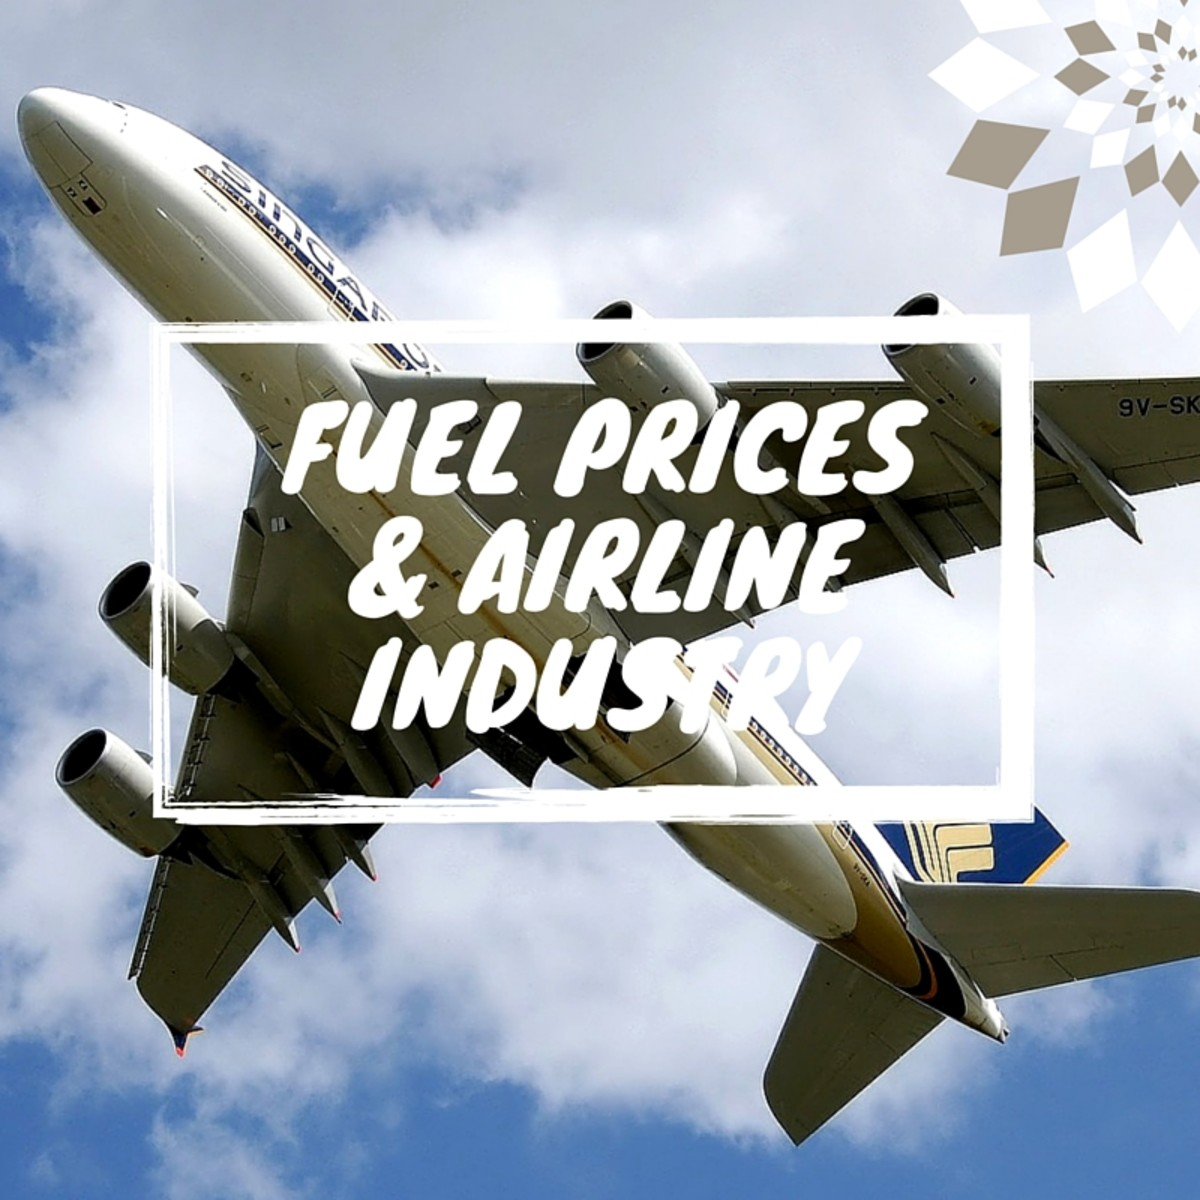 Research papers price discrimination airline industry market